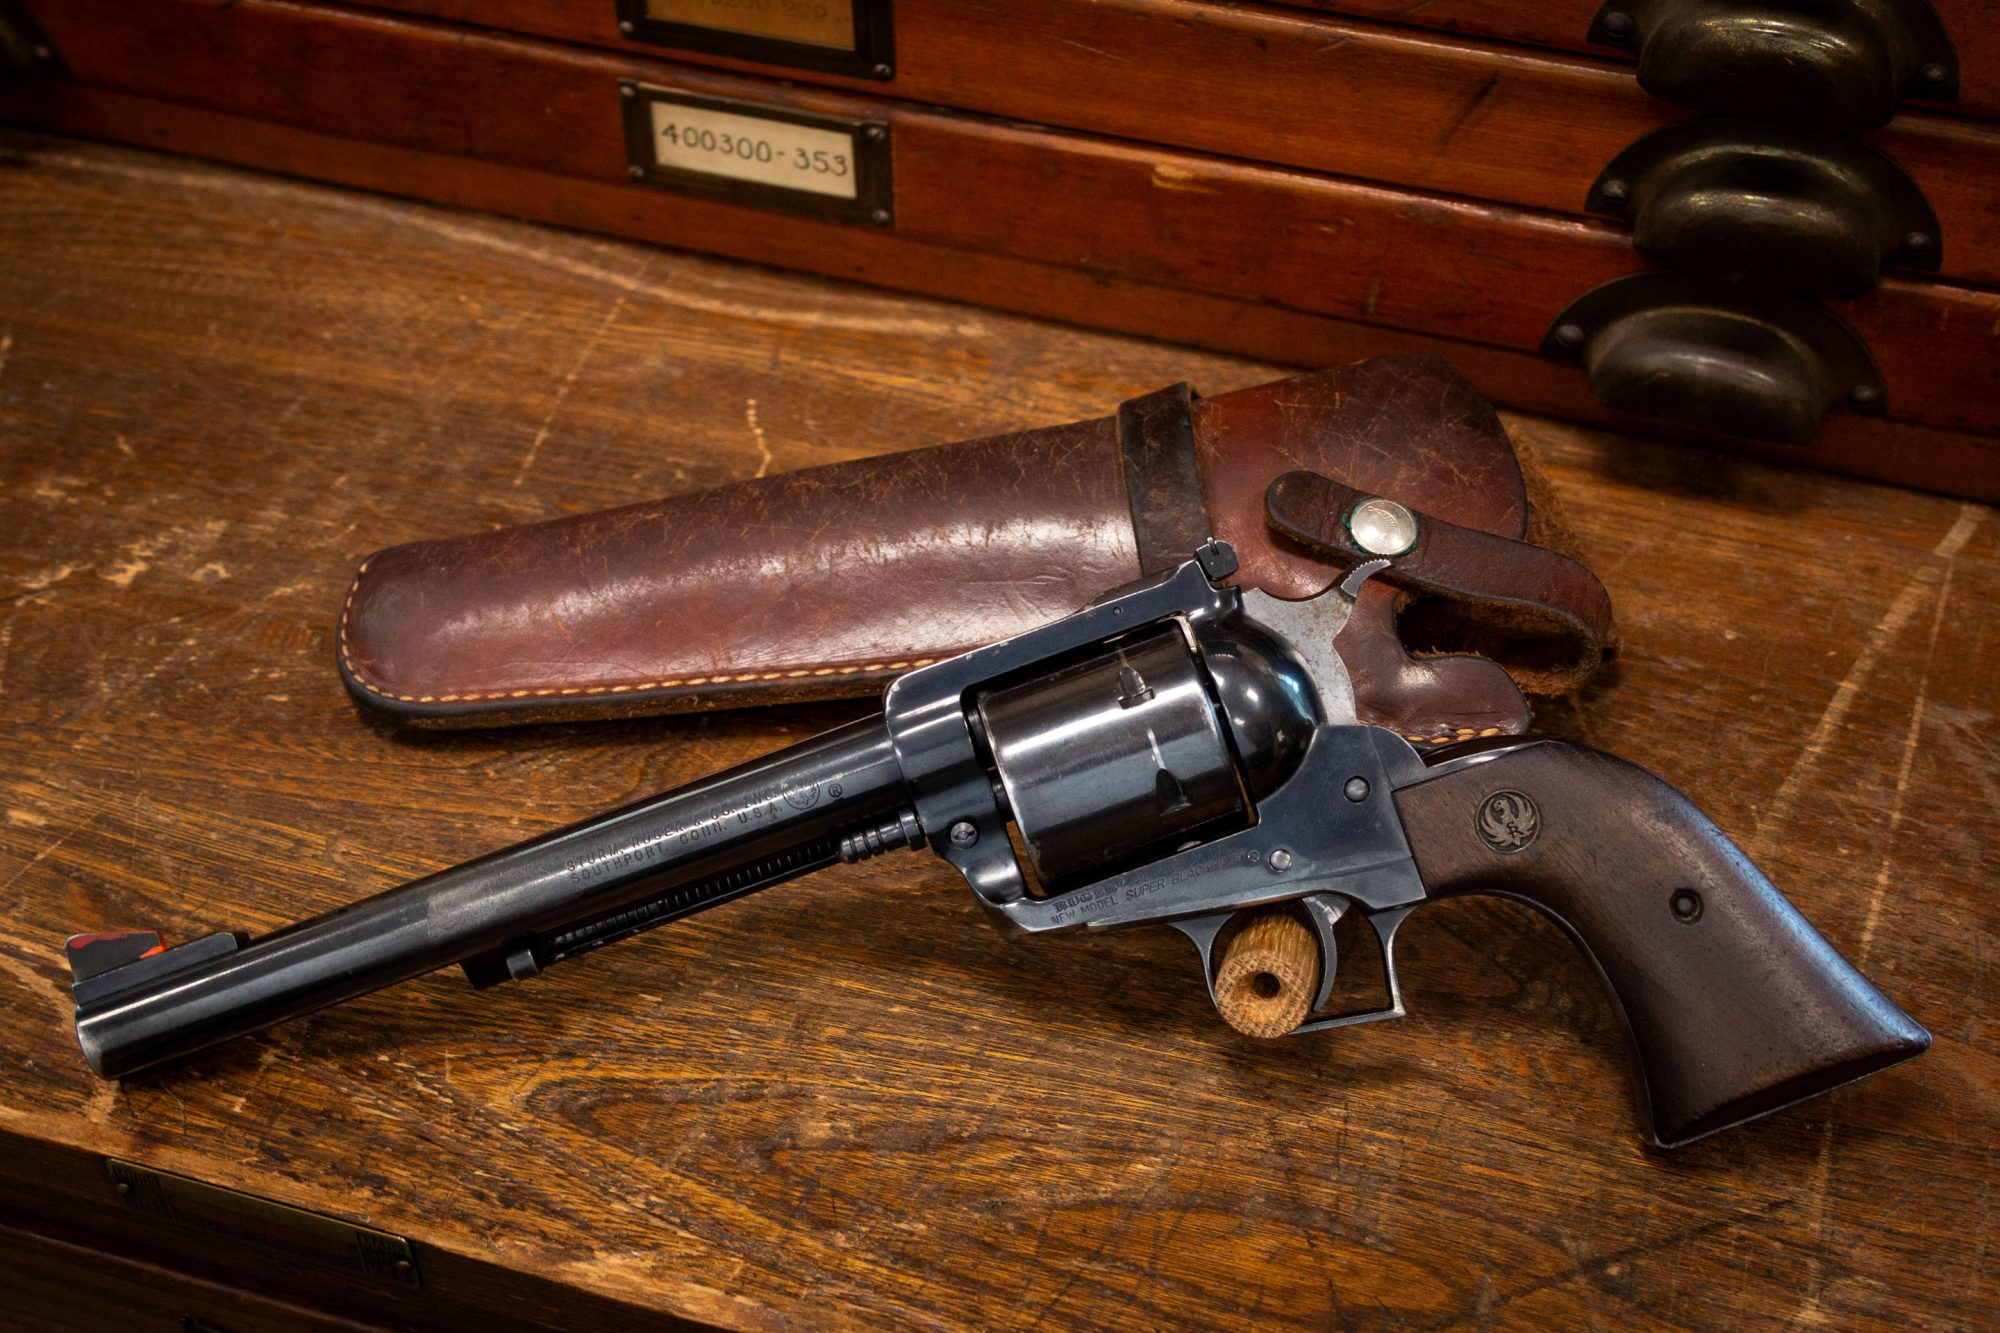 Photo of a pre-owned Ruger Super Blackhawk, for sale as-is through Turnbull Restoration of Bloomfield, NY